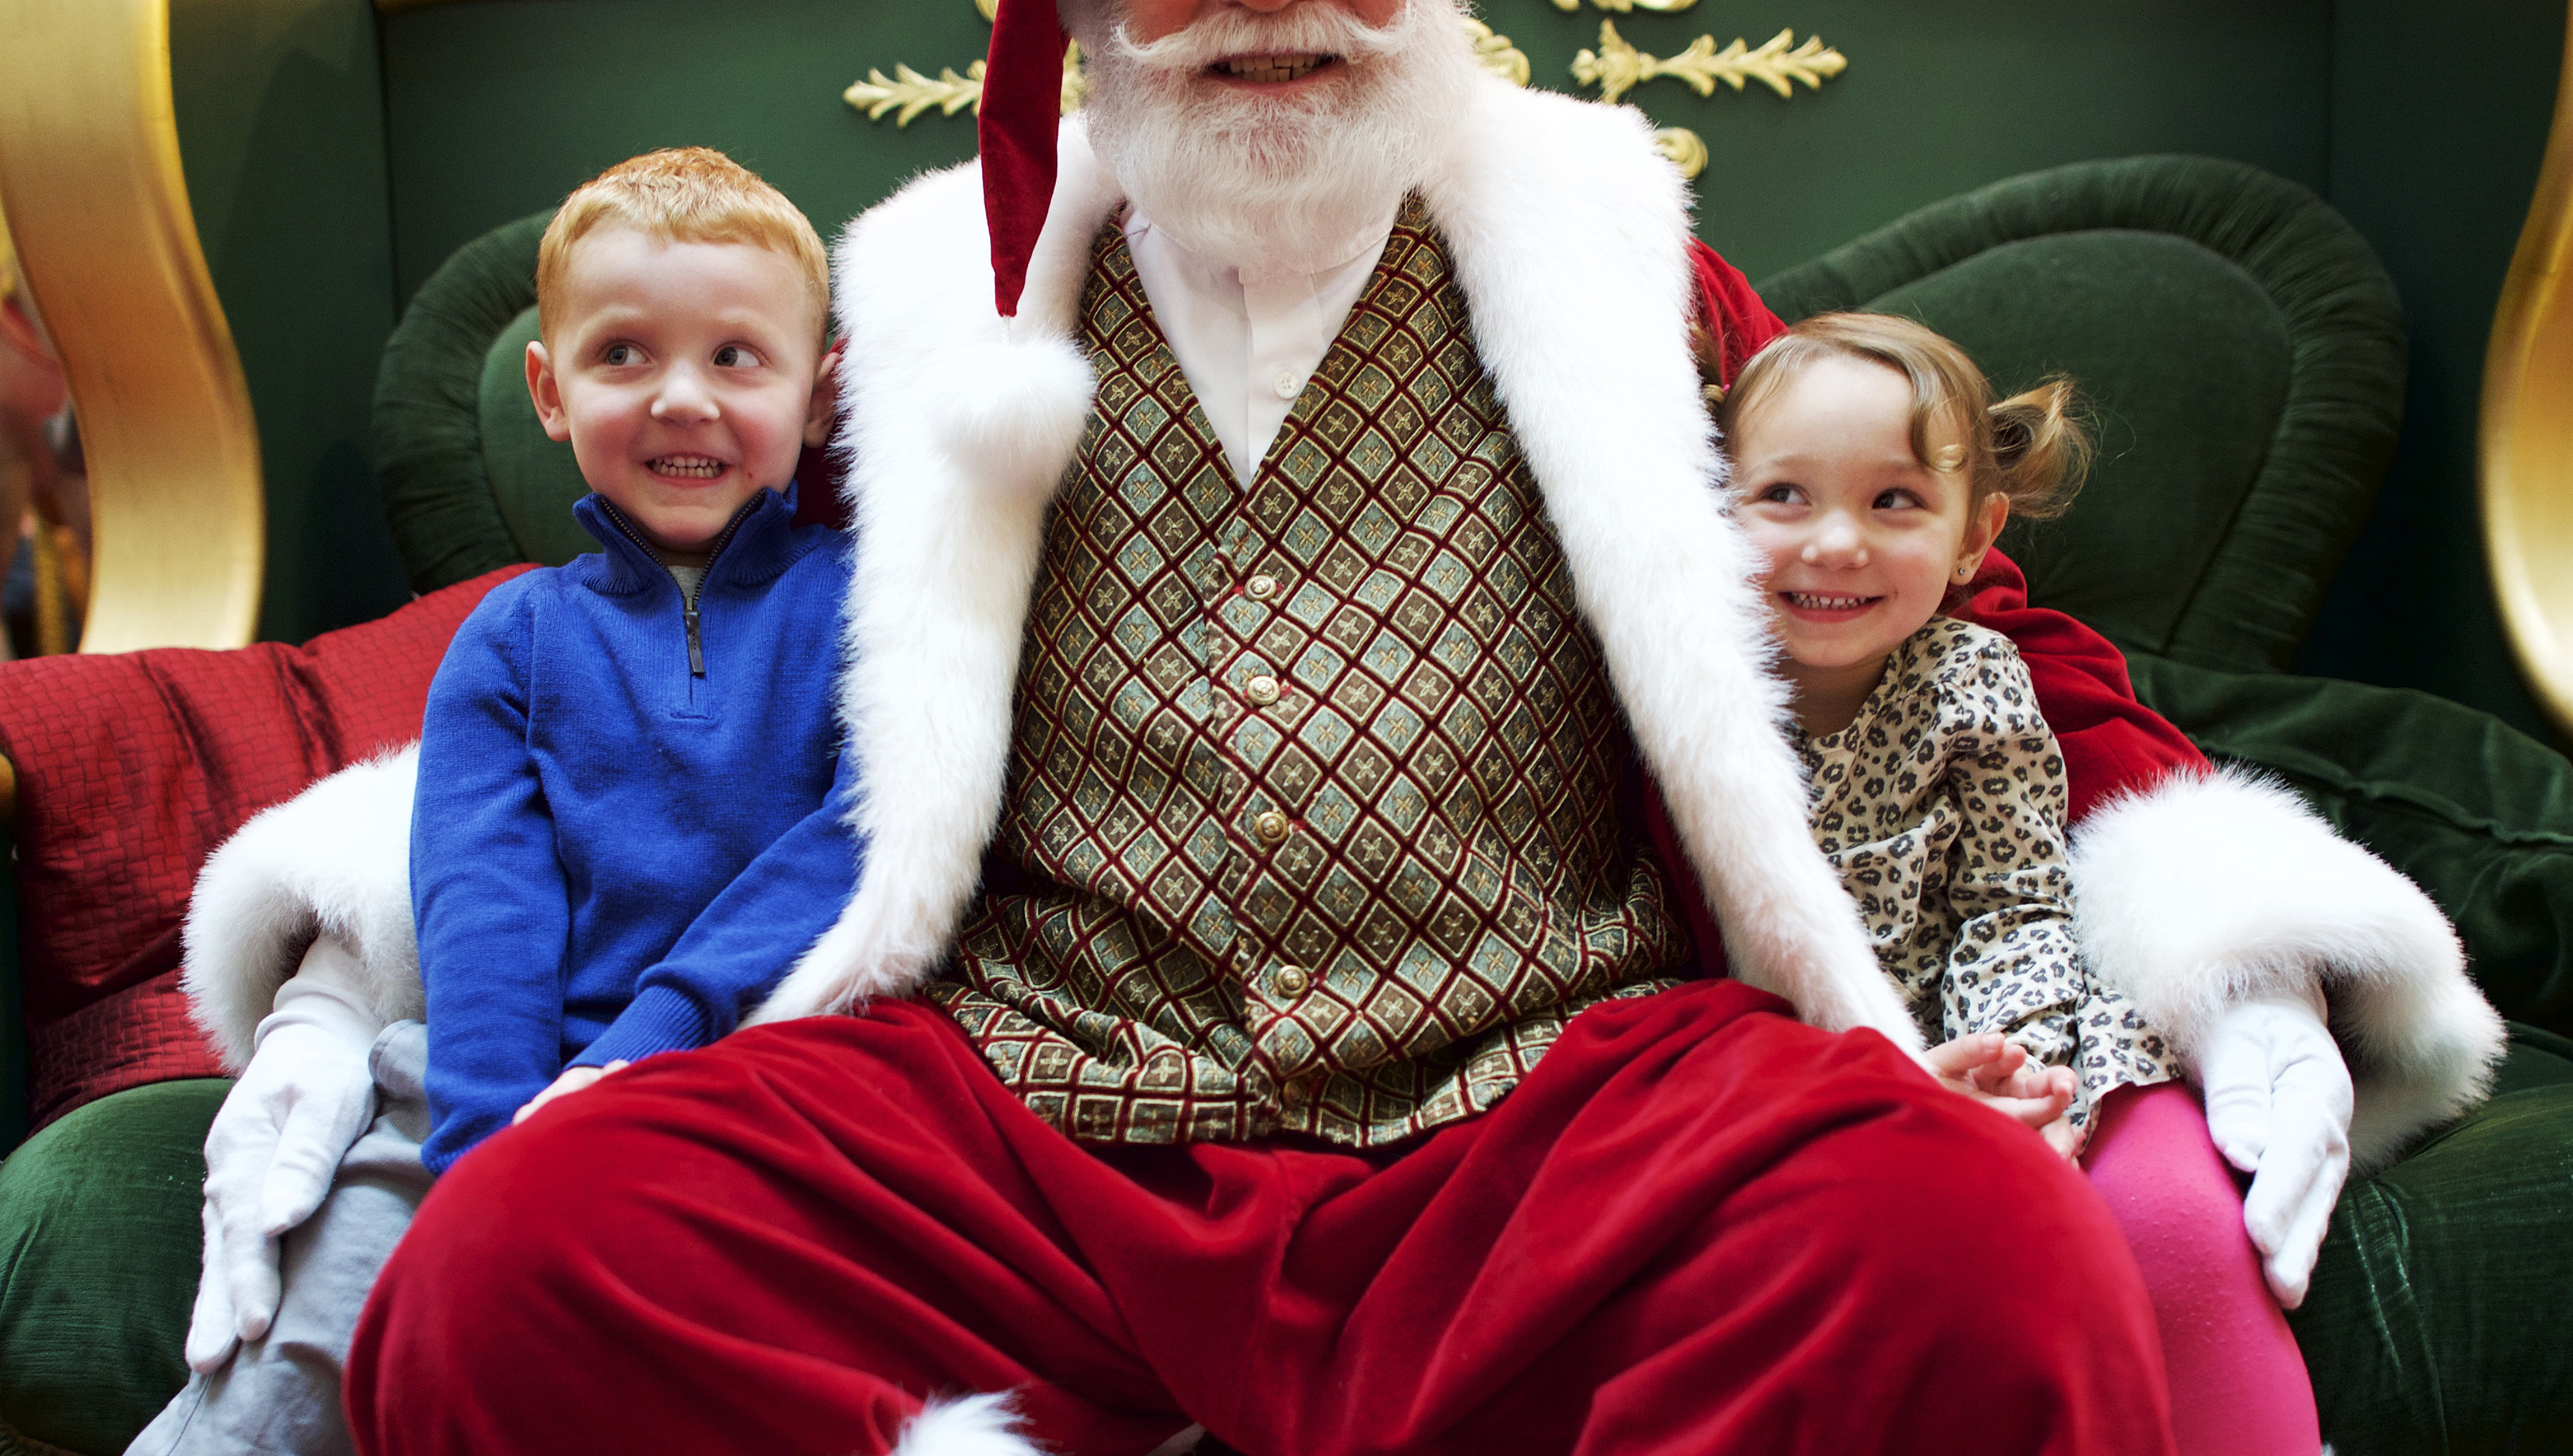 Brother and sister, Brynlie, 4, and Brayden, 2, Knowles (L-R) sit on Santa Claus's lap for a portrait at The Plaza, King of Prussia Mall, United State's largest retail shopping space, in King of Prussia, Pennsylvania on December 6, 2014.  The 2.7 million square feet shopping destination is owned by Simon Property Group. Picture taken December 6, 2014.  REUTERS/Mark Makela (UNITED STATES - Tags: BUSINESS) - RTR4H1BV